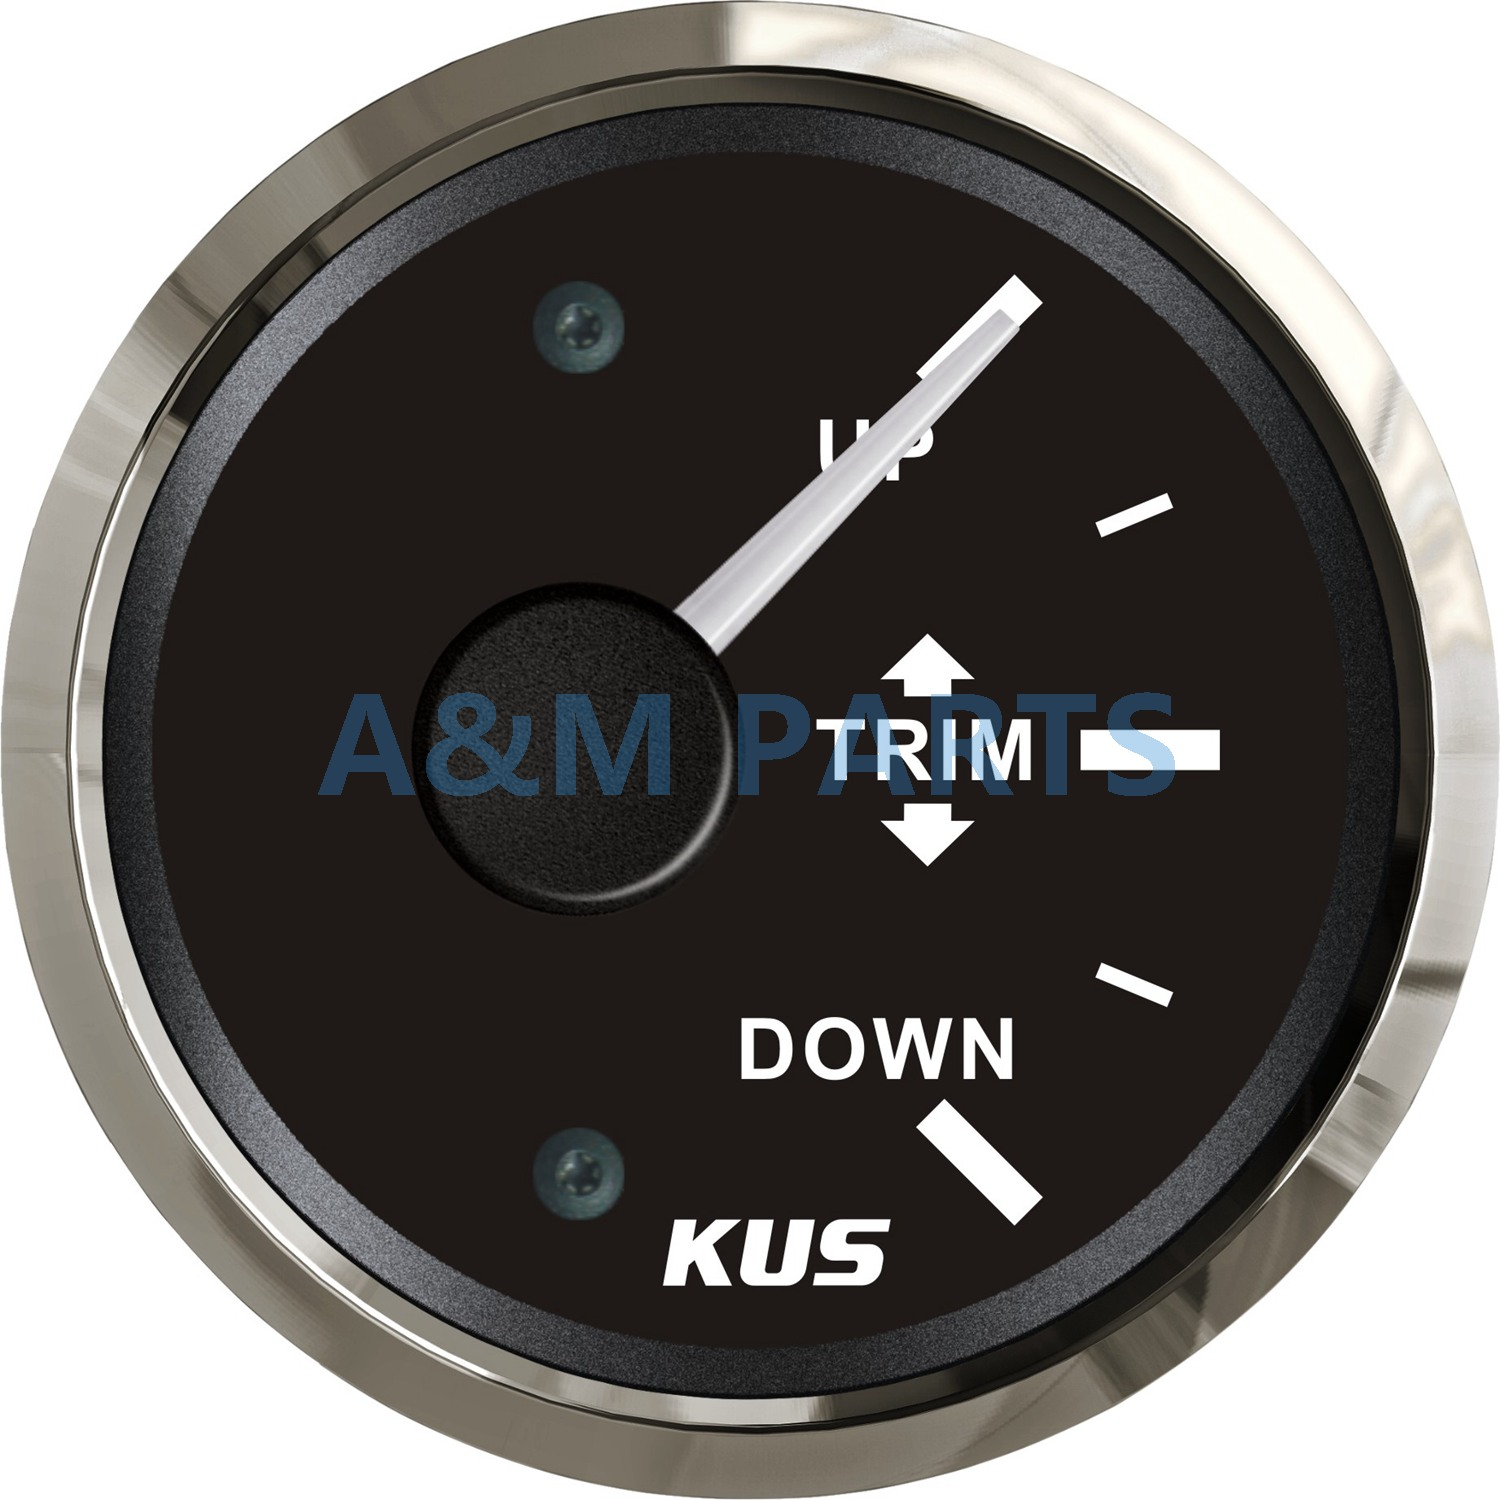 Kus Boat Trim Gauge Wema Marine Tilt For Mercury Yamaha Outboard And Wiring Diagram 52mm 0 190 Ohms In Speedometers From Automobiles Motorcycles On